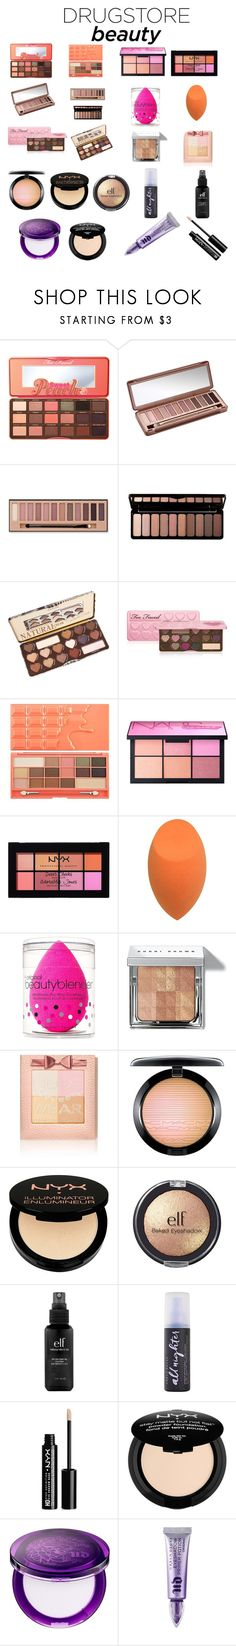 """Drugstore Beauty-Dupes"" by lioness006 ❤ liked on Polyvore featuring beauty, Too Faced Cosmetics, Urban Decay, Charlotte Russe, e.l.f., NARS Cosmetics, NYX, beautyblender, Bobbi Brown Cosmetics and Physicians Formula"